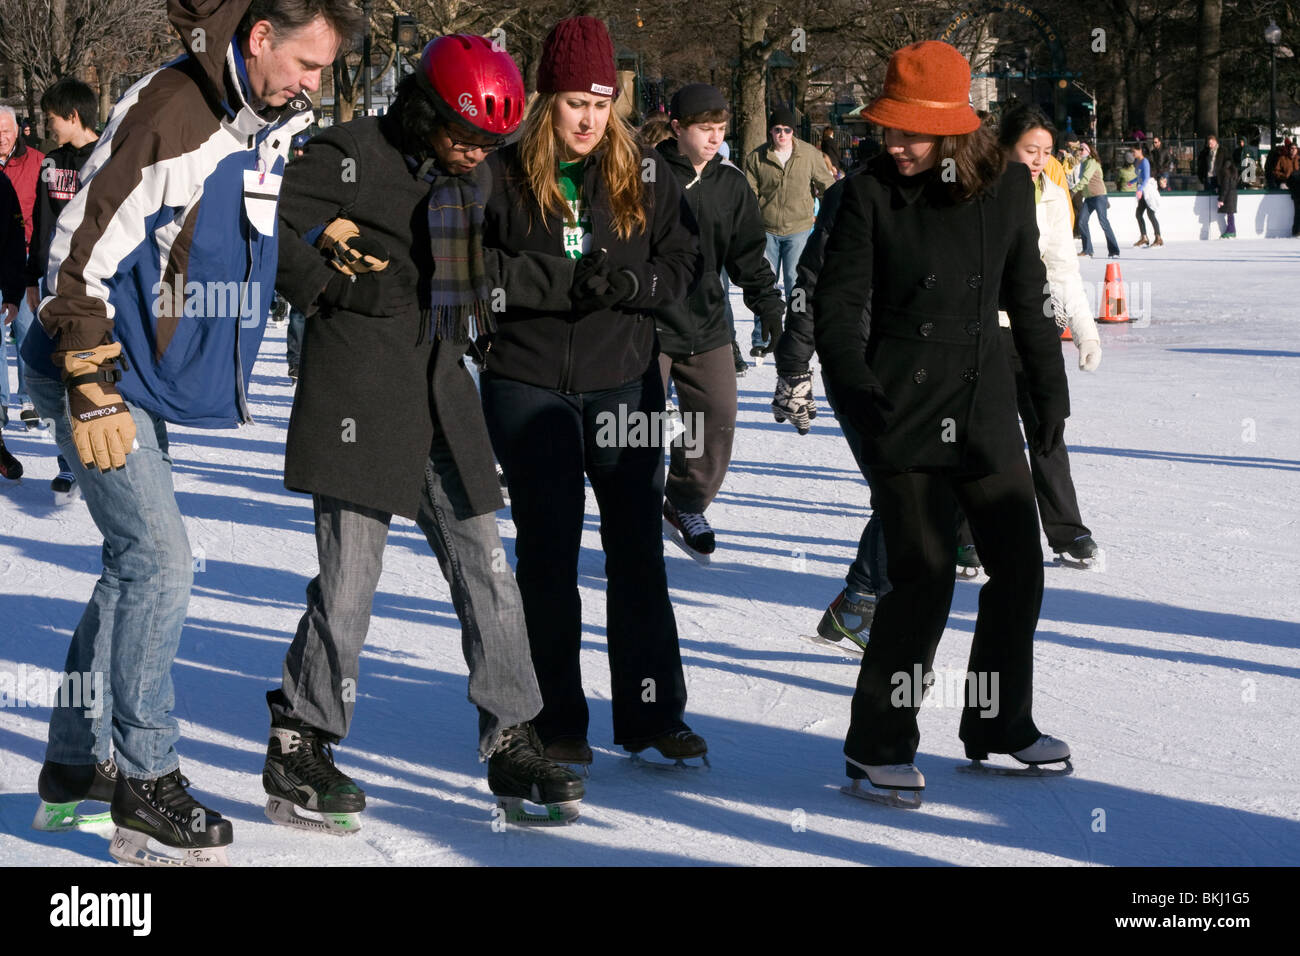 Man being helped by two friends whilst learning how to ice skate. - Stock Image